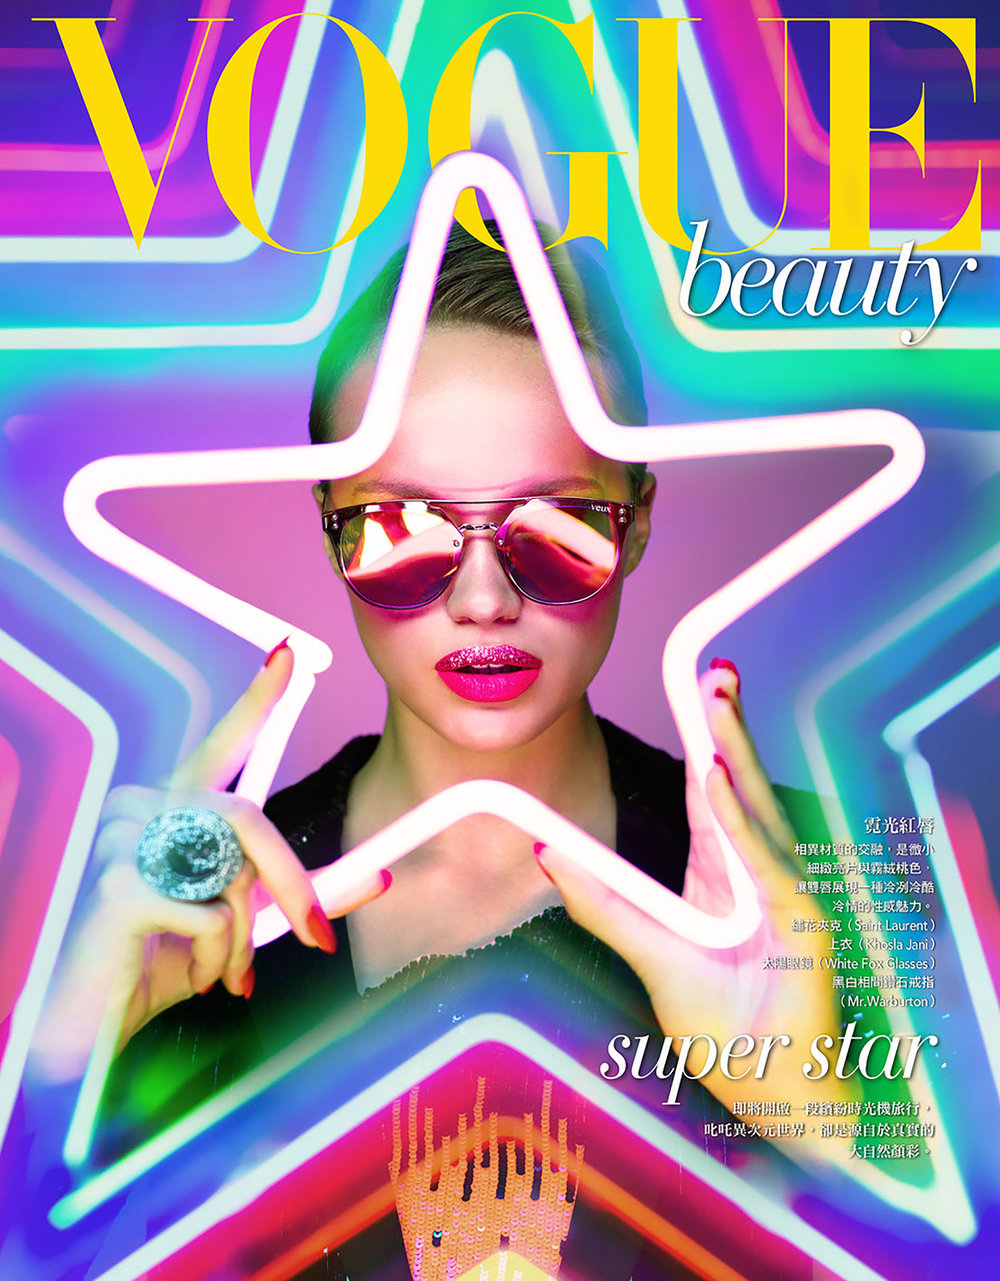 1Mae Van Der Weide for VOGUE Taiwan by Enrique Vega [Beauty Cover].jpg